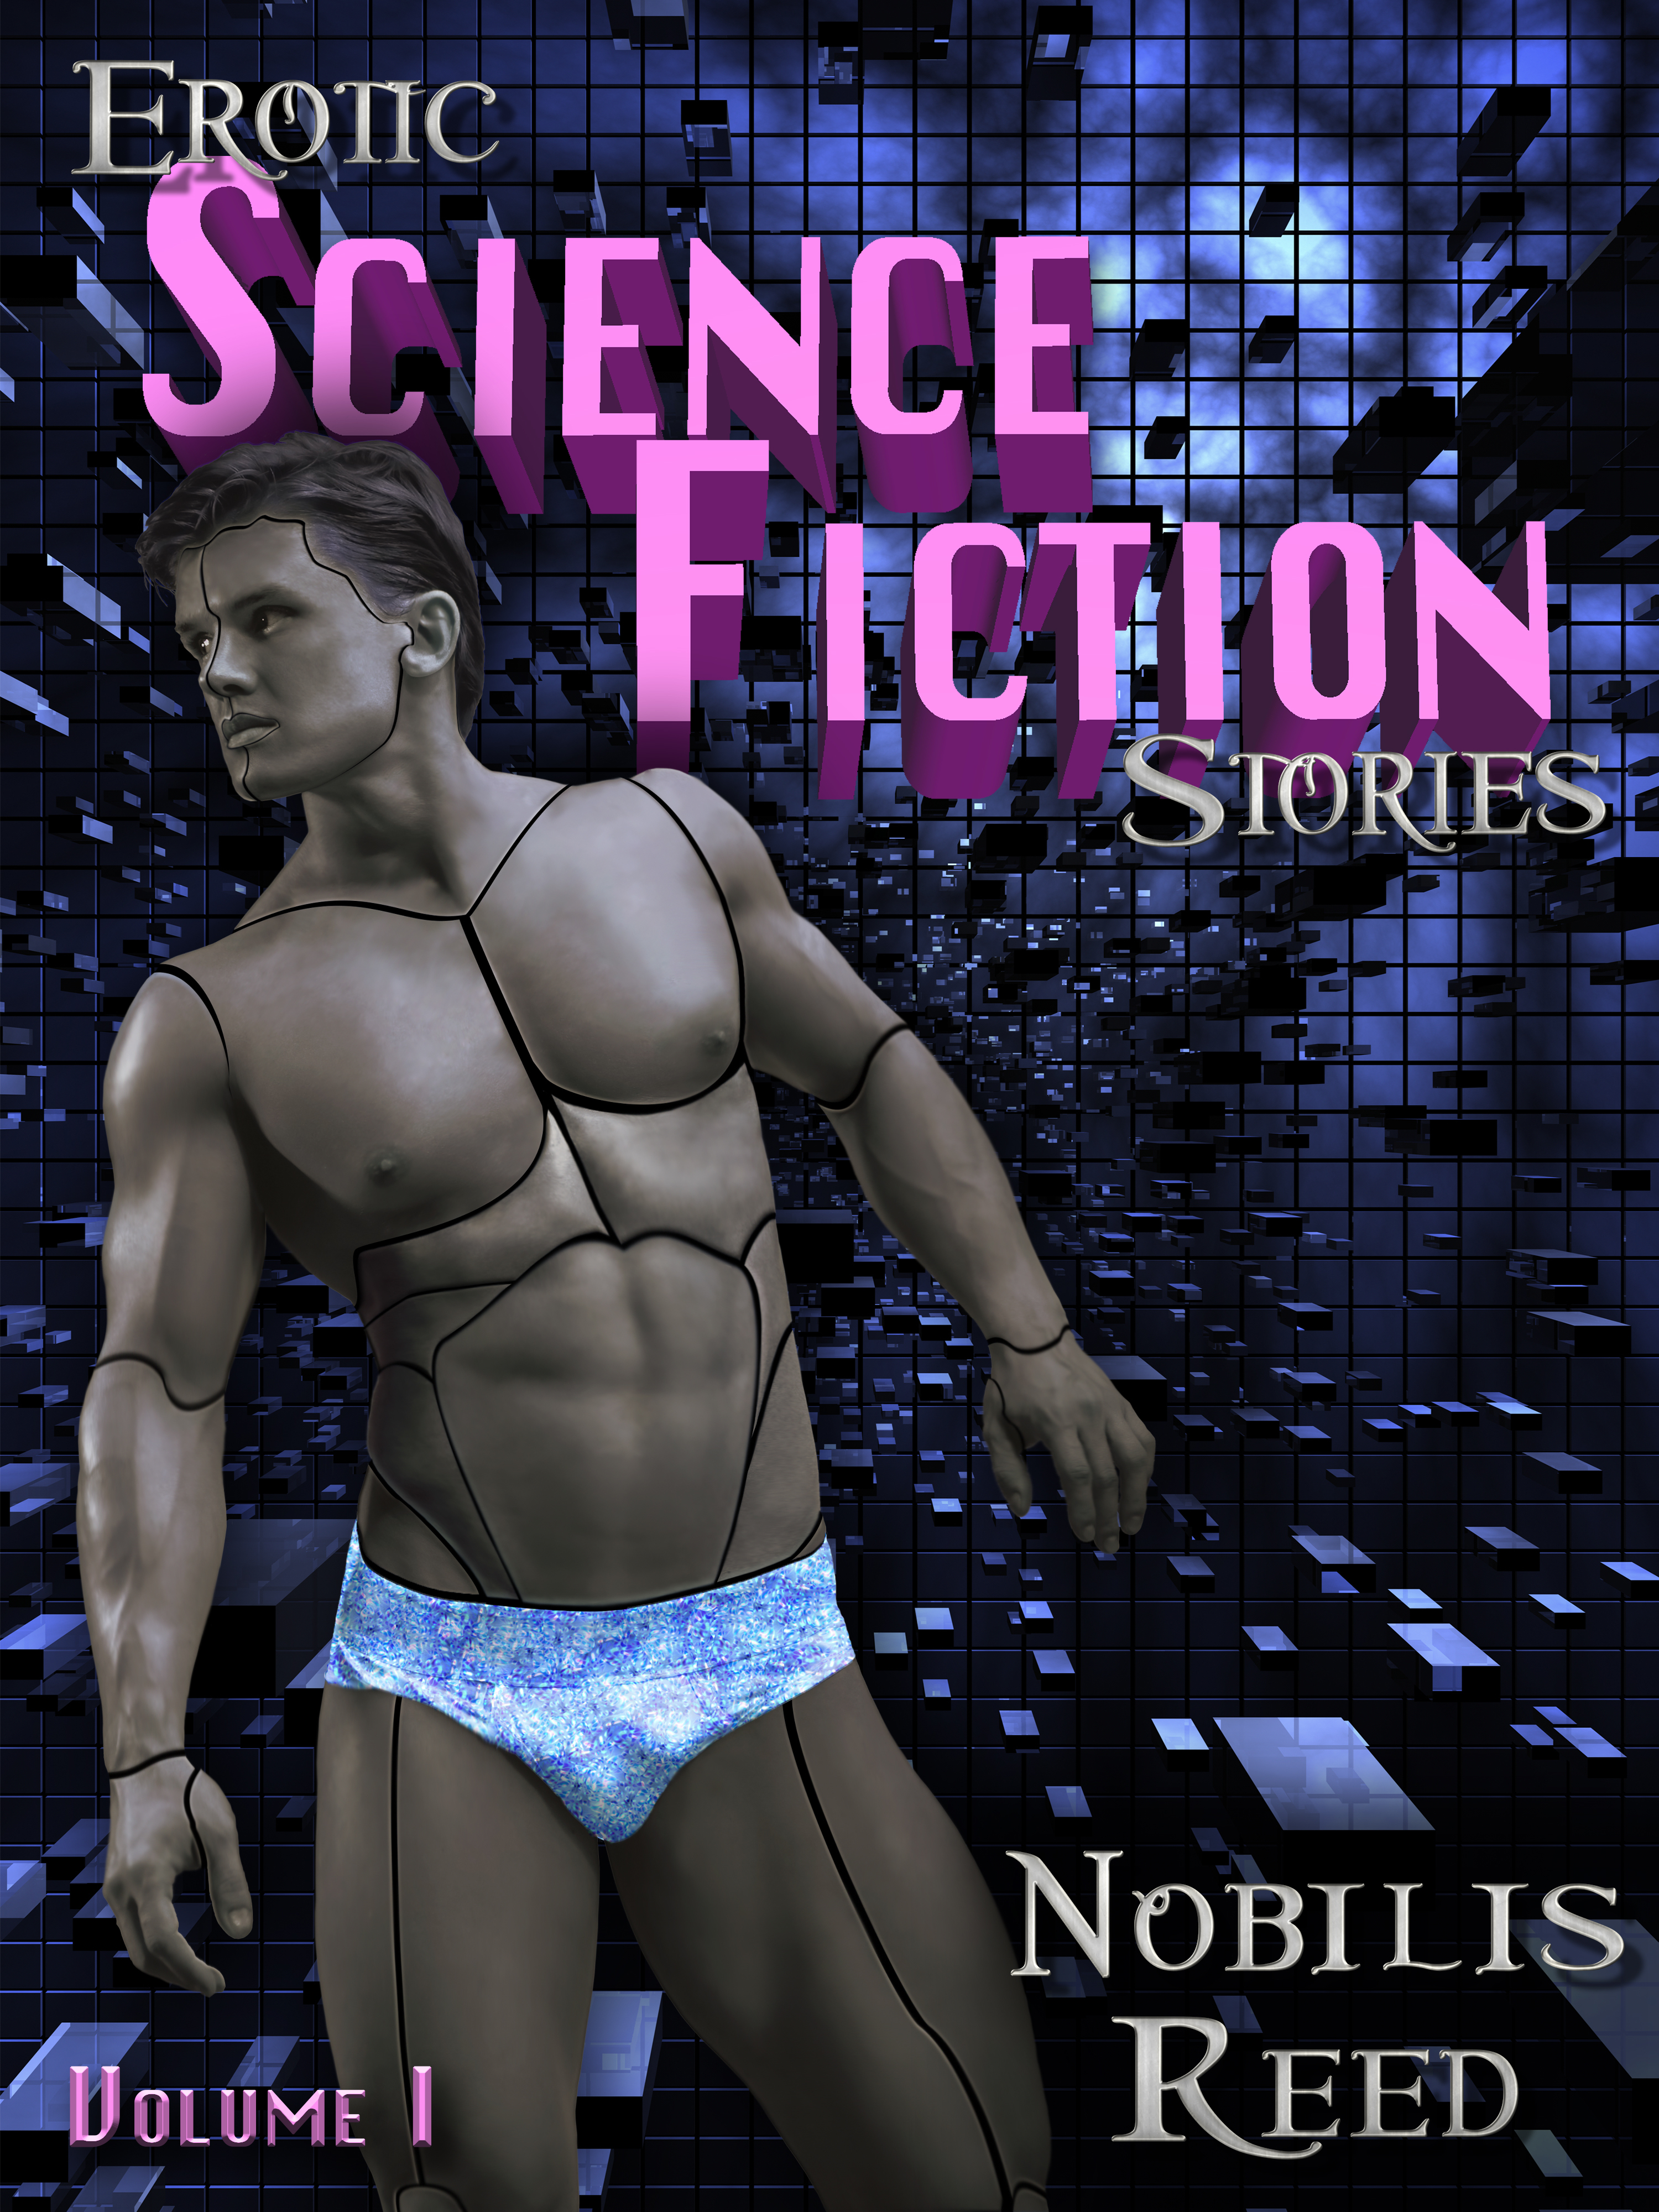 Erotic science fiction smut scene